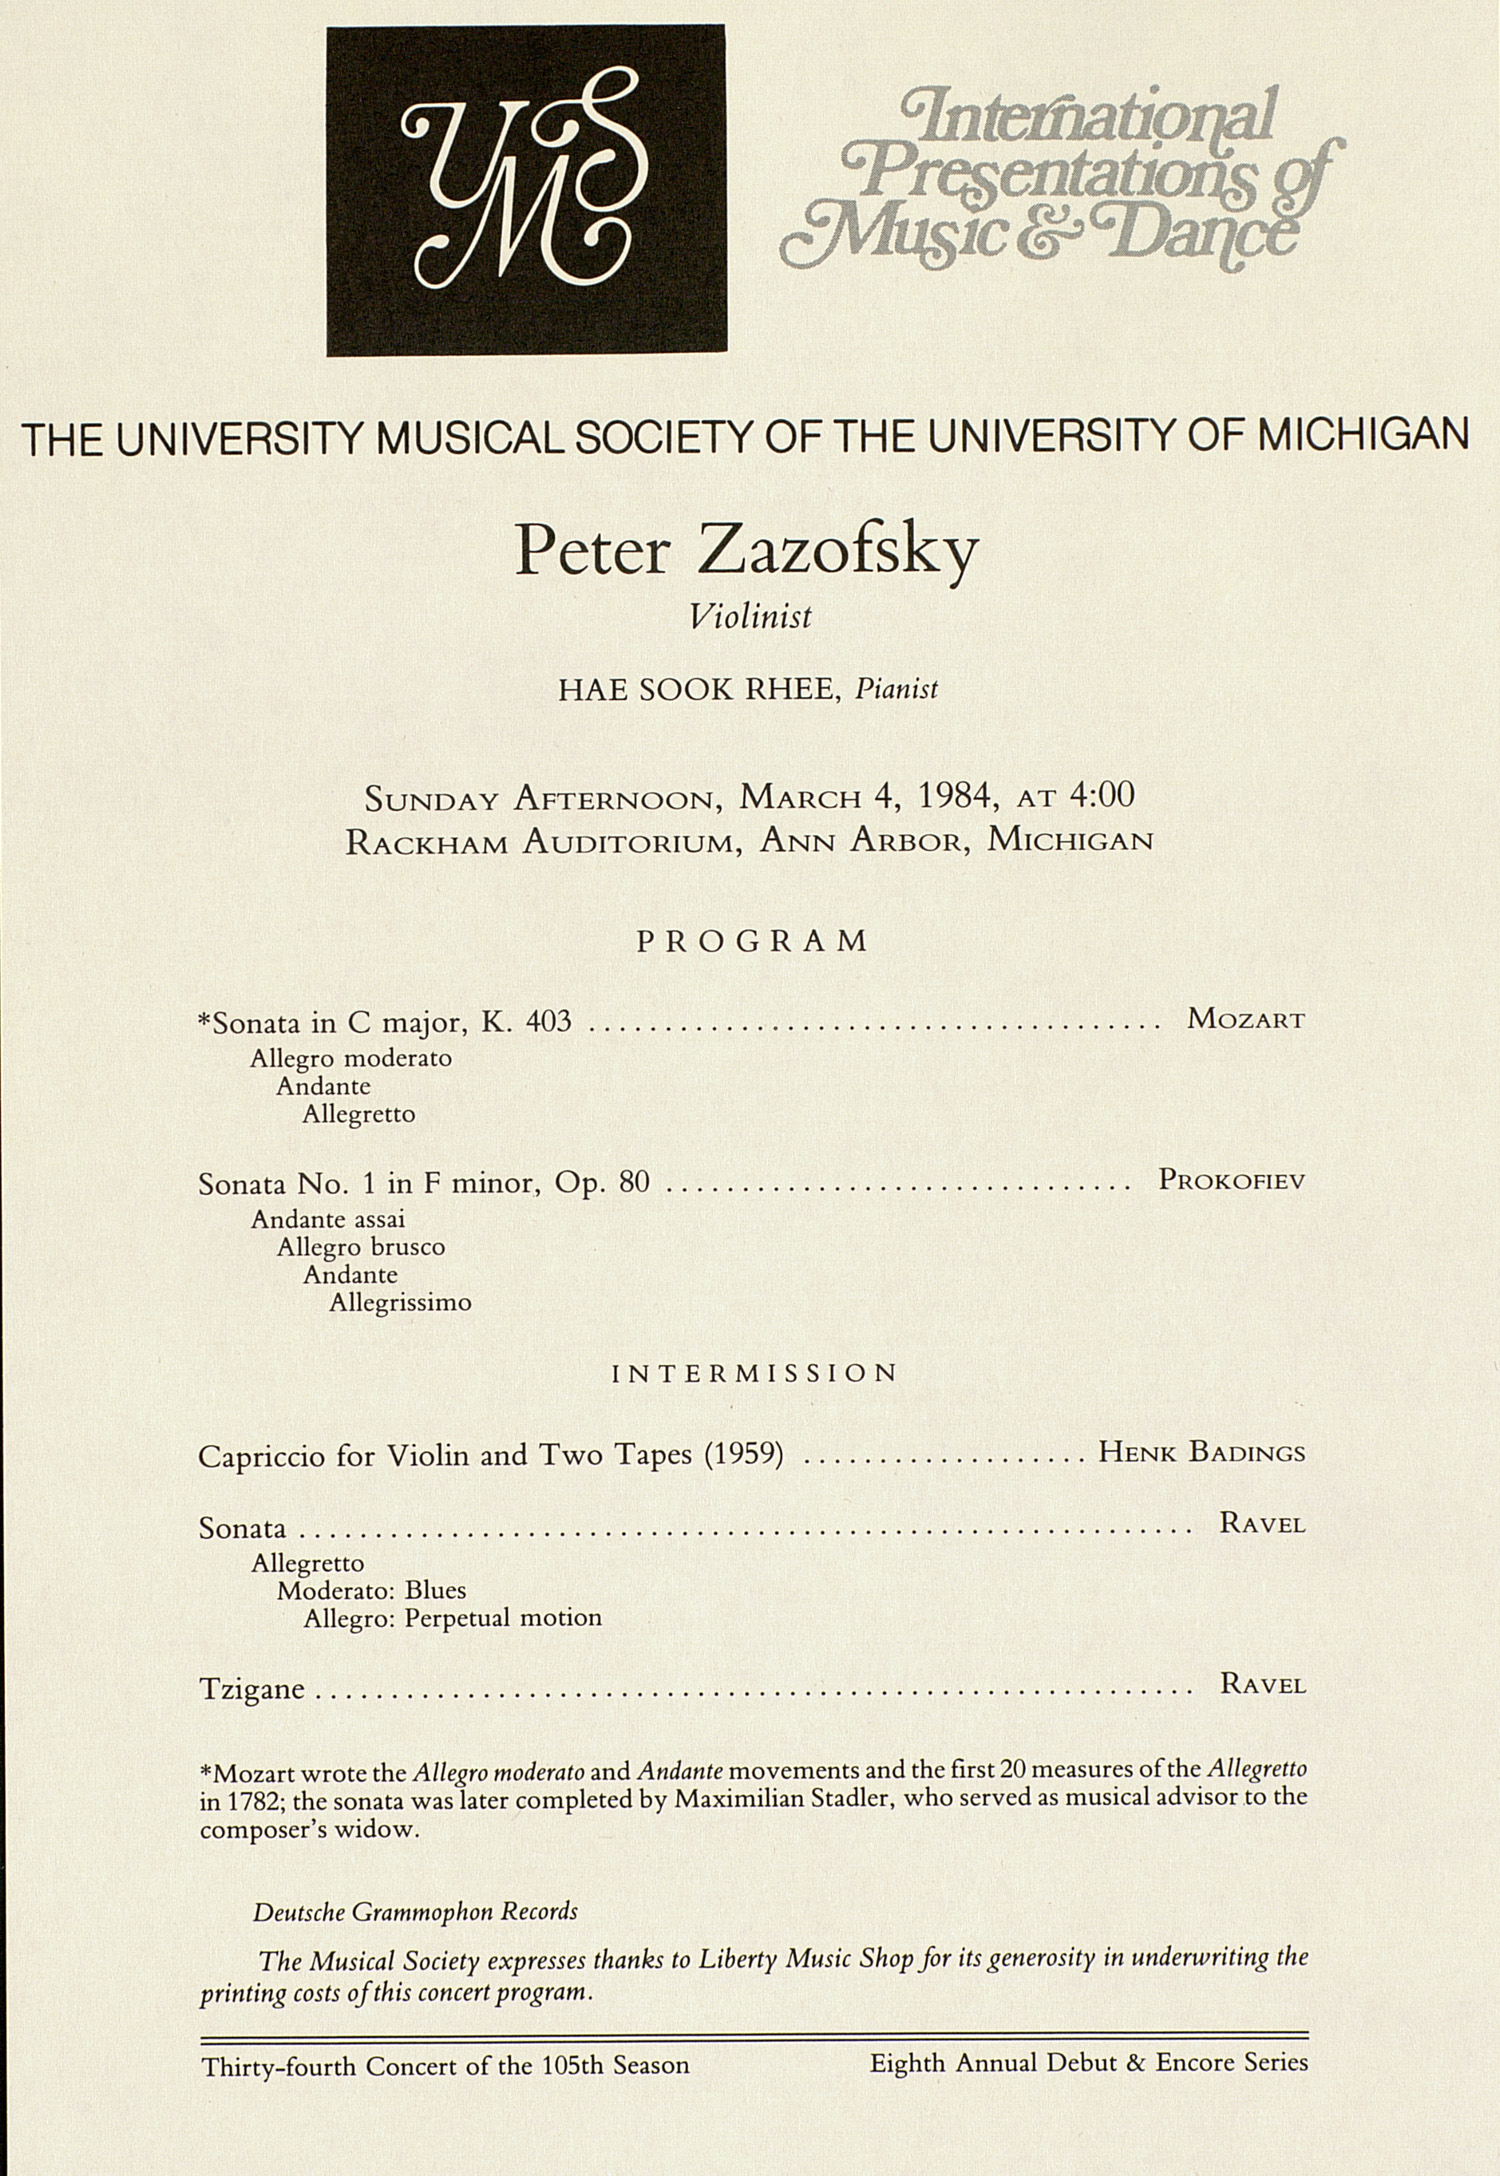 UMS Concert Program, March 4, 1984: International Presentations Of Music & Dance --  image